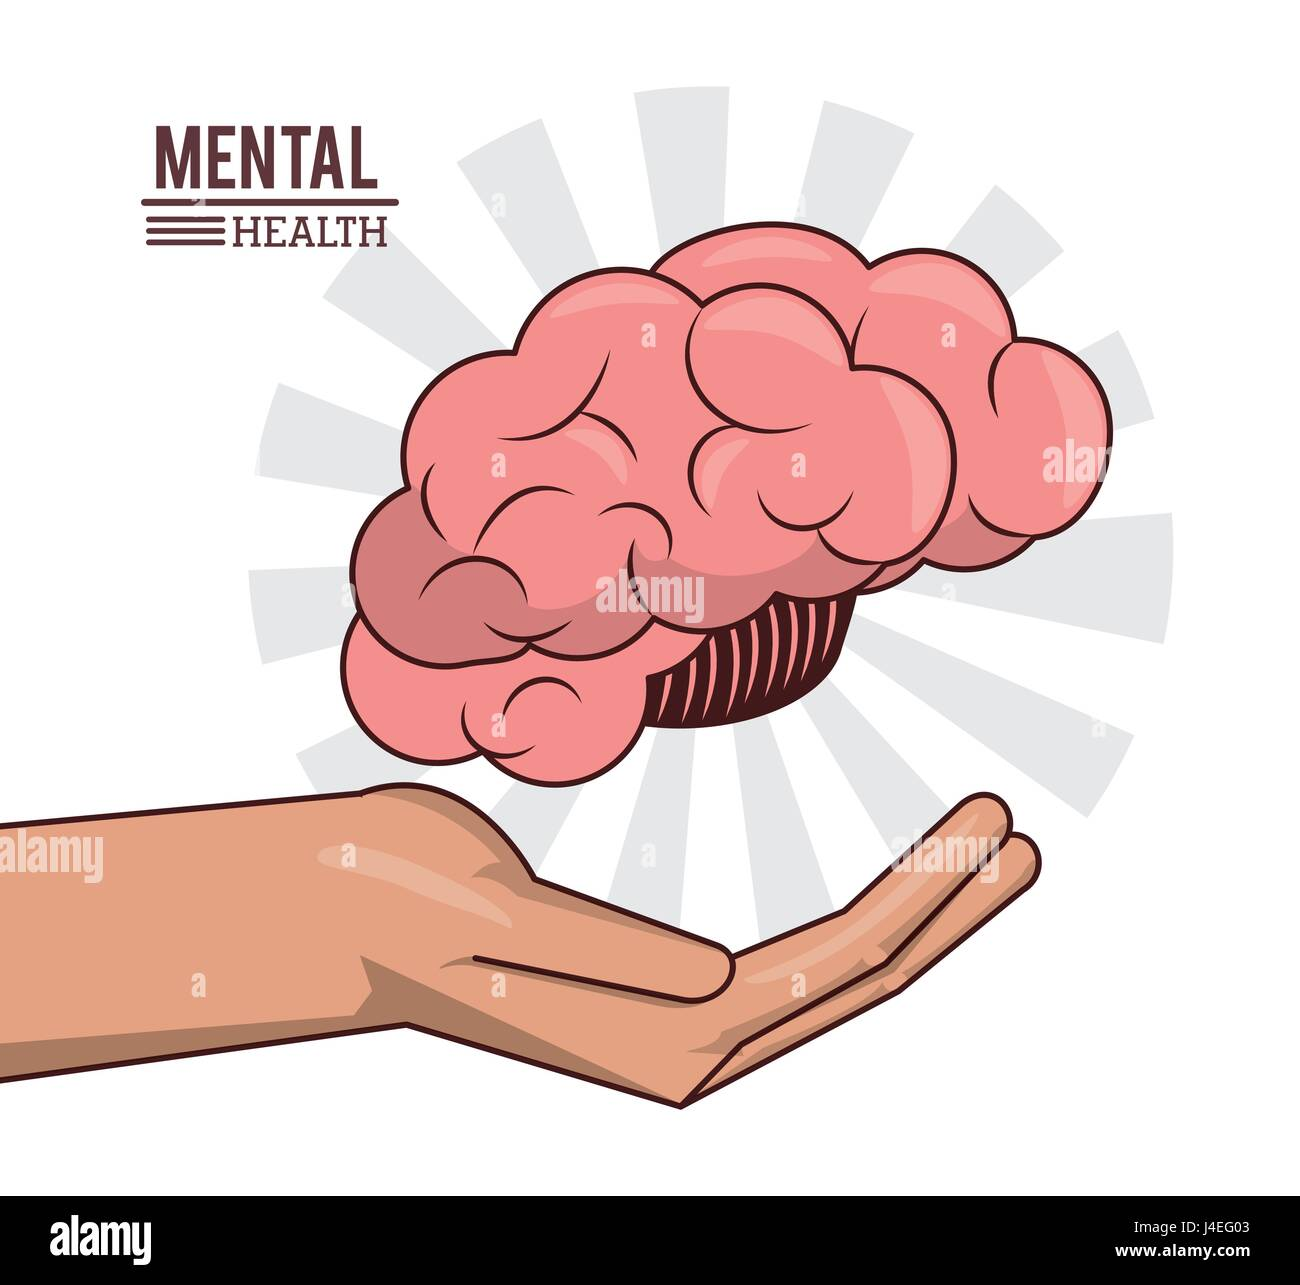 mental health, hand with brain human prevention medical - Stock Image